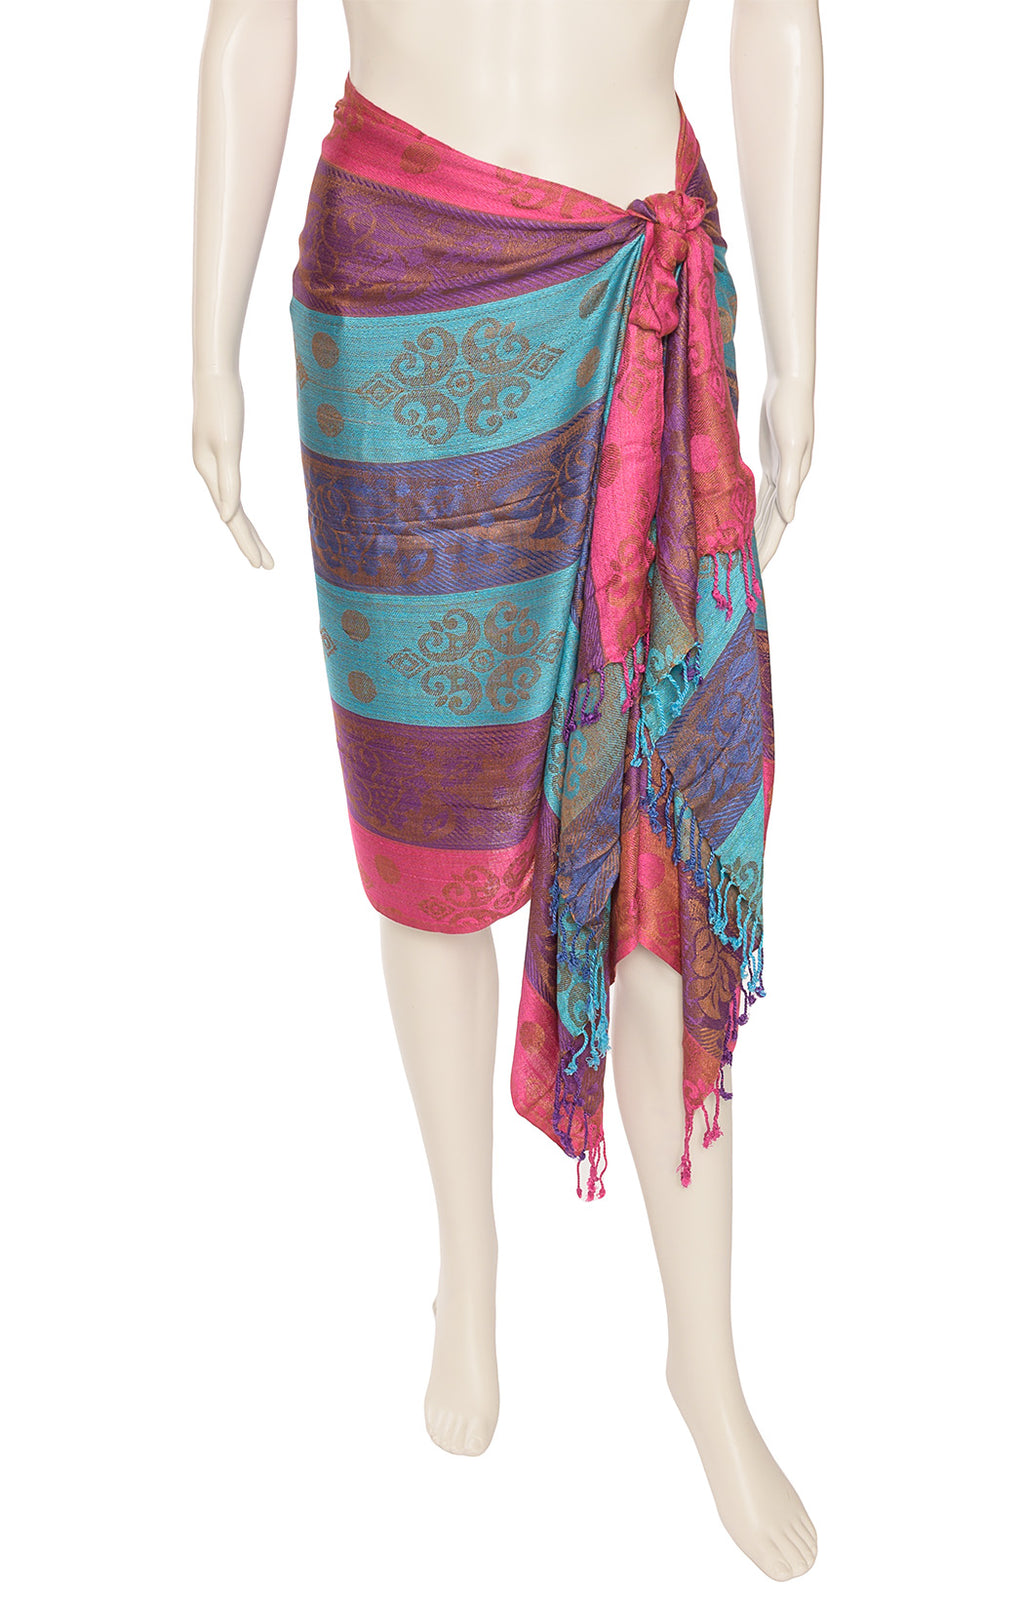 "Front view of NO NAME Shawl/ Sarong Size: 72"" L x 26"" W"